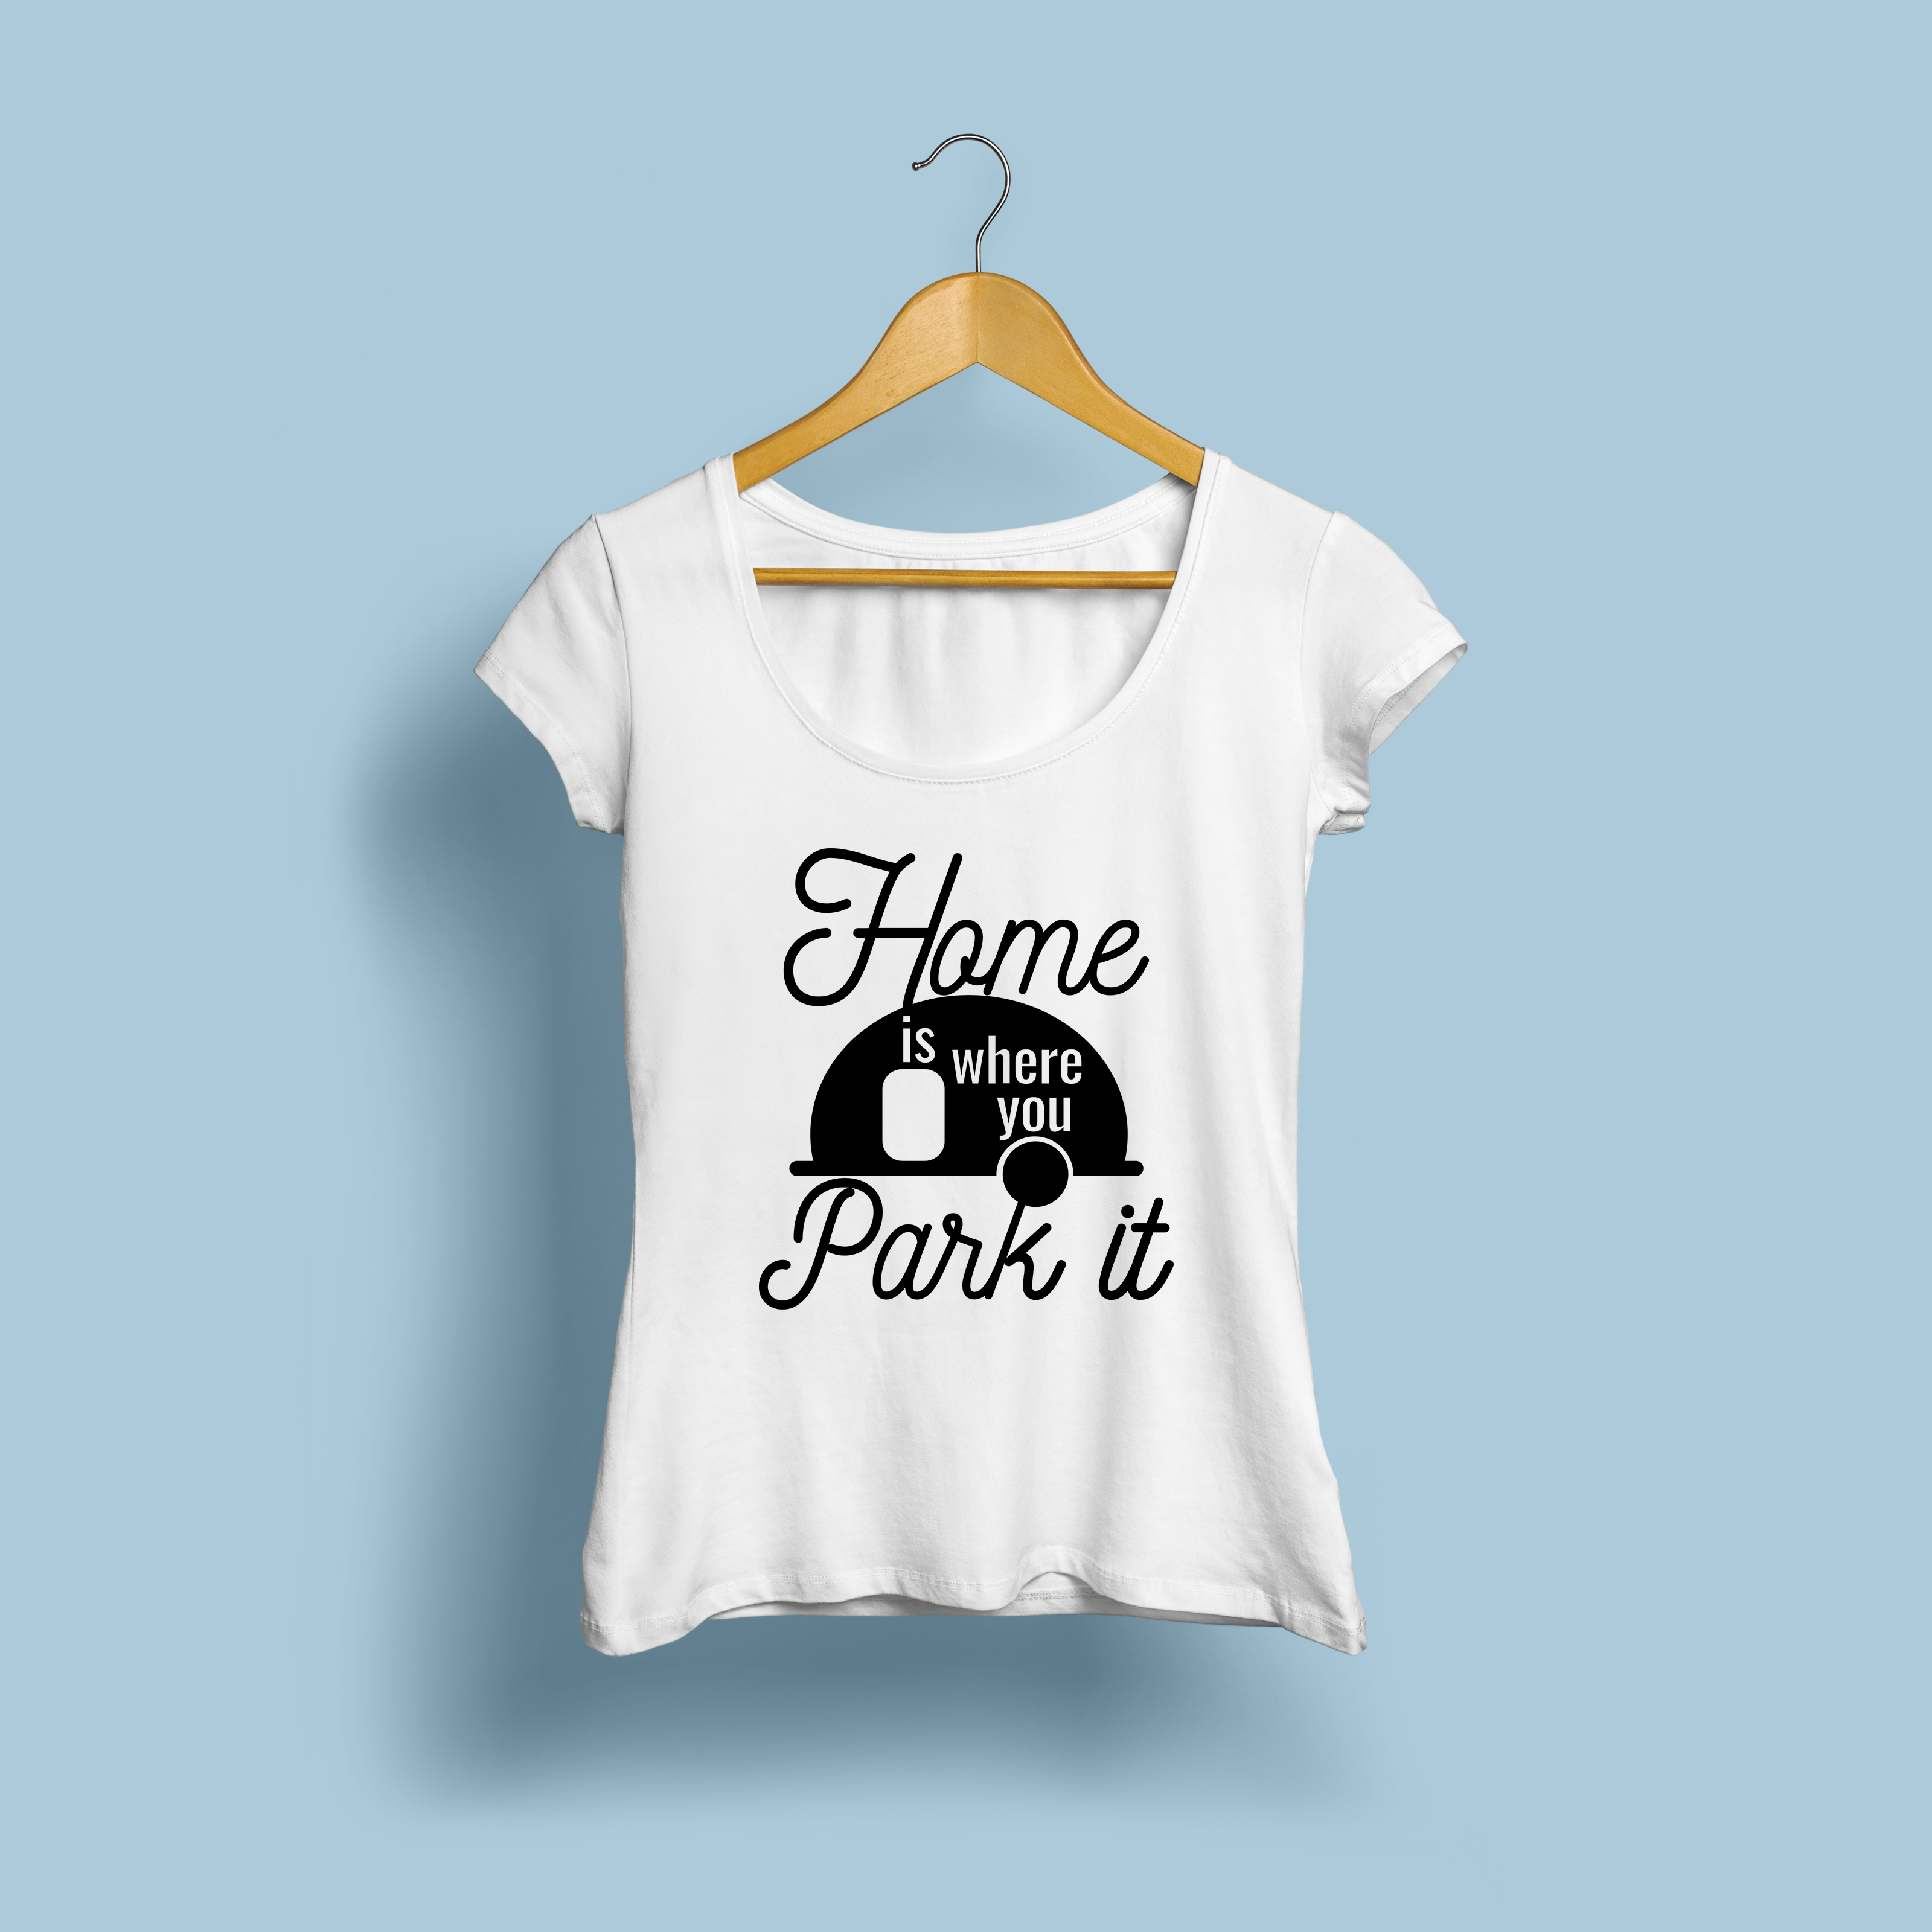 Home is Where You Park It | Cut File SVG | Printable PNG example image 2